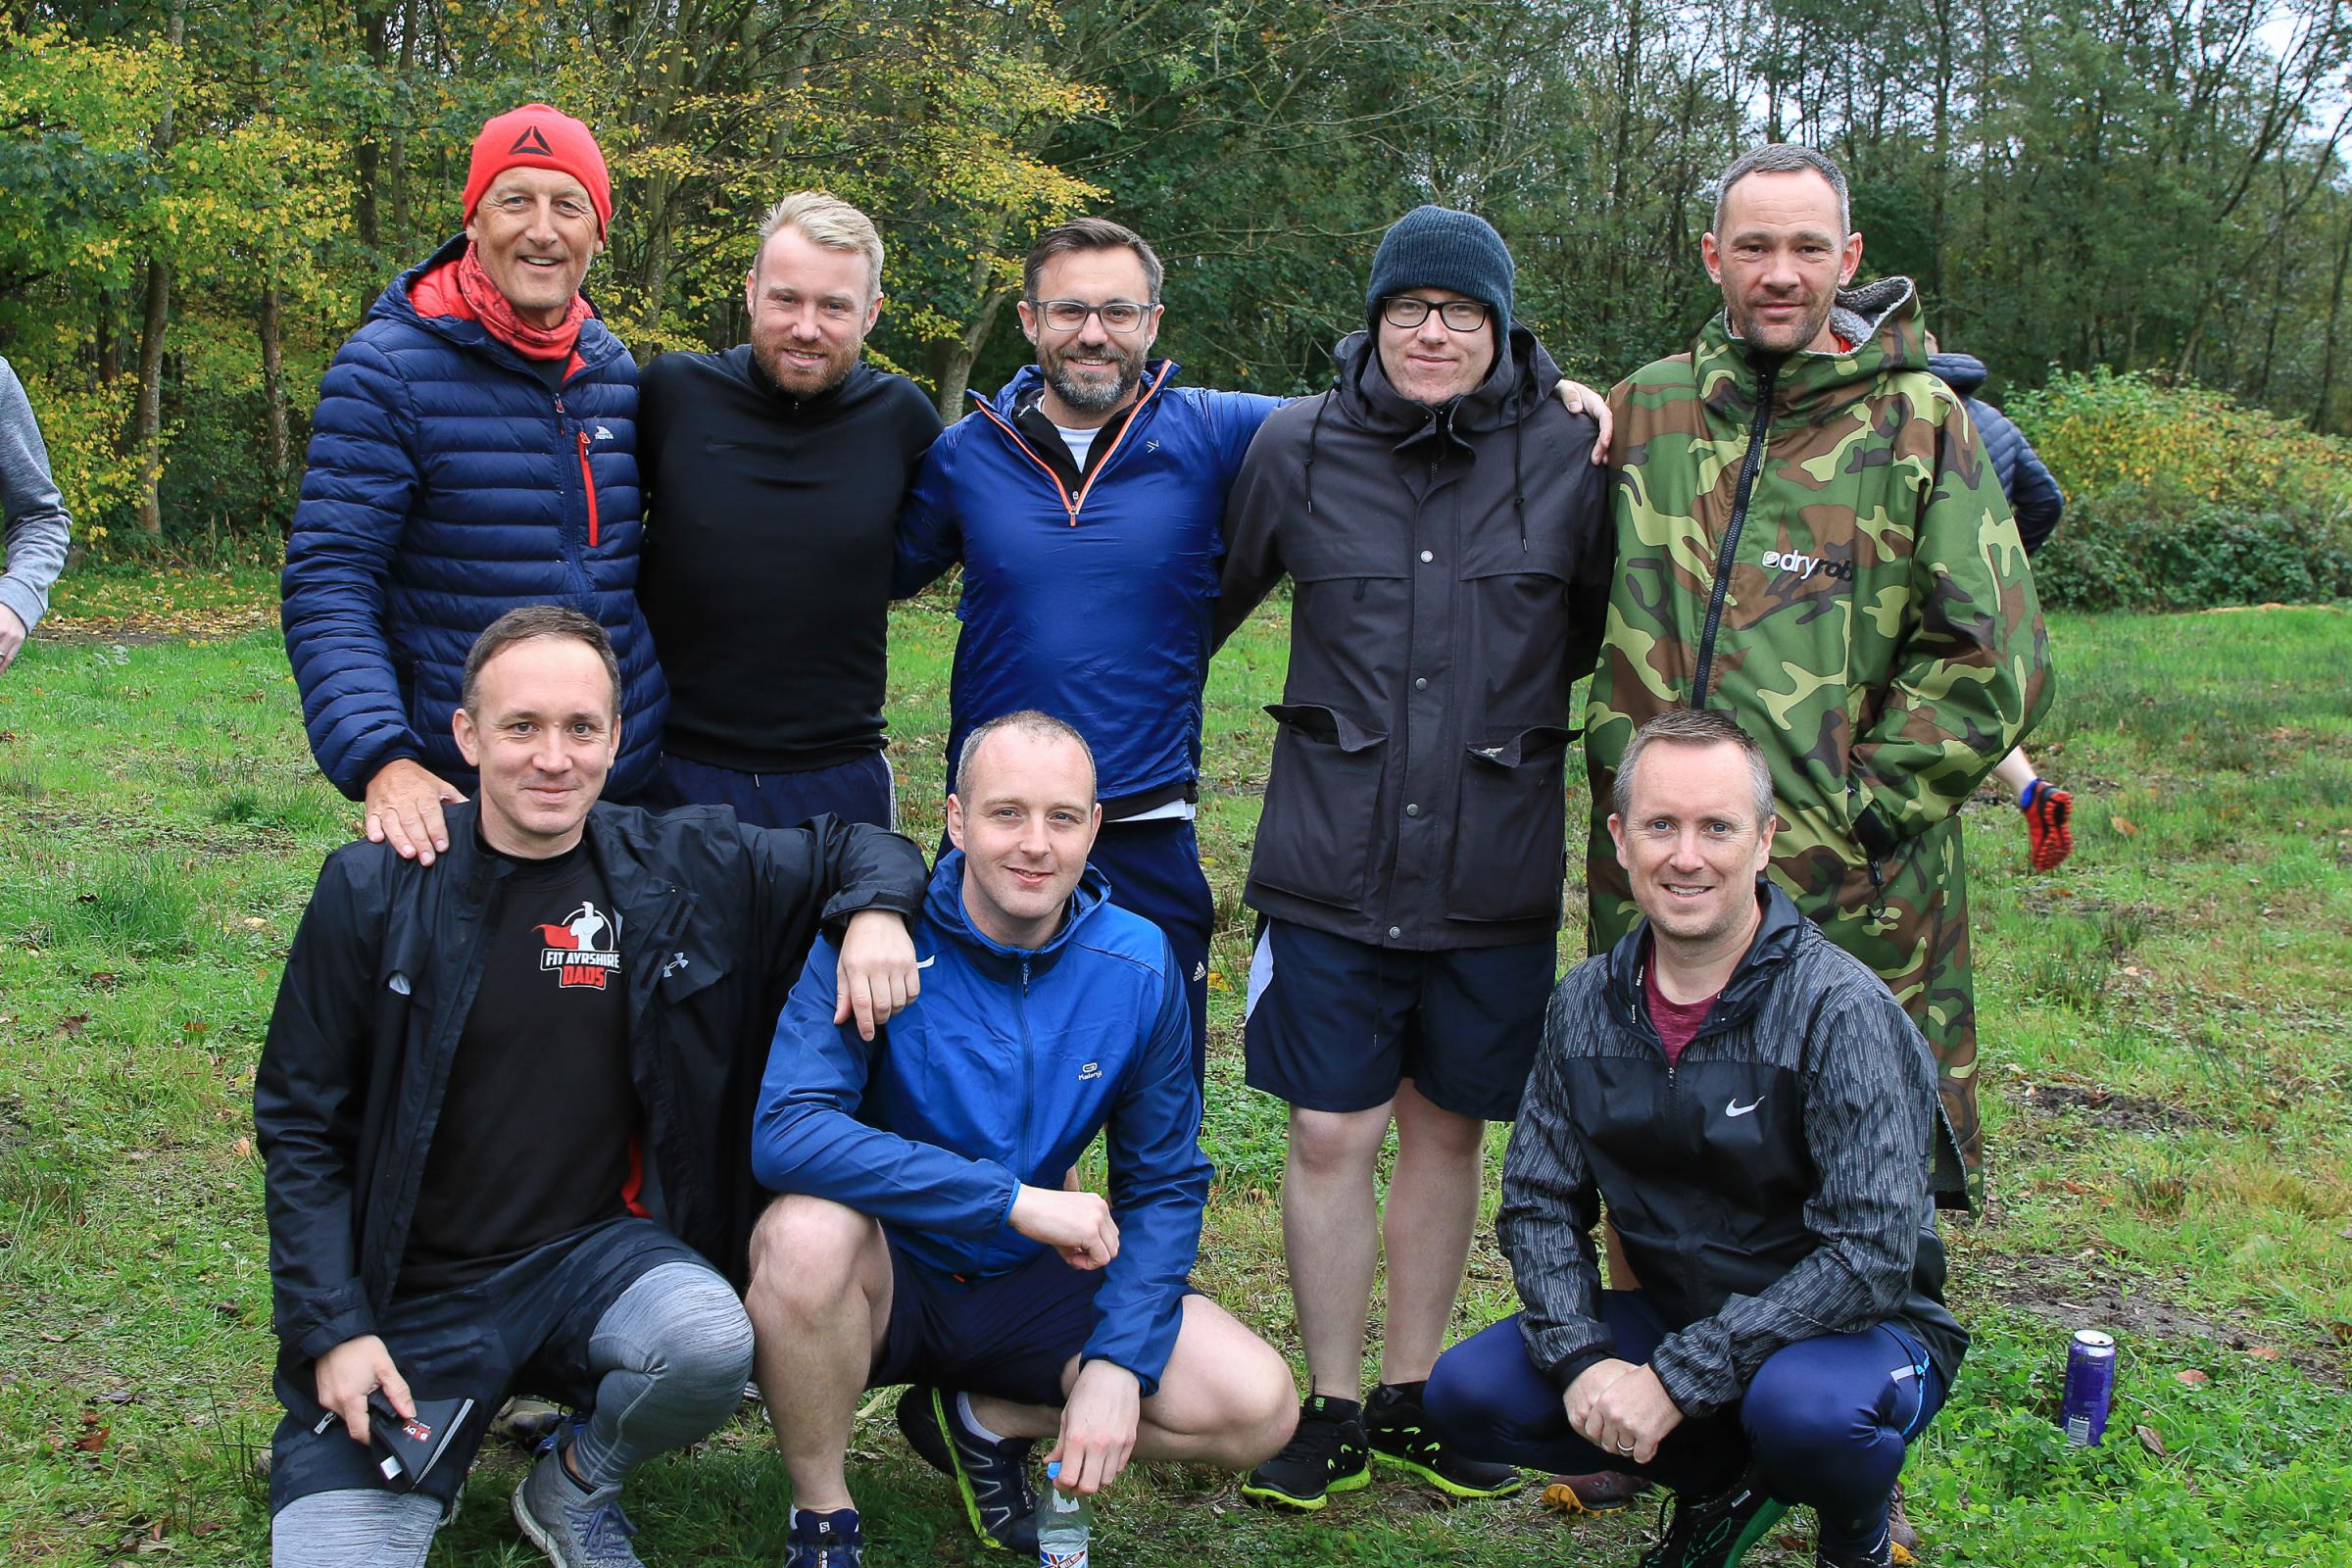 Fit Ayrshire Dads put their best feet forward for relay race